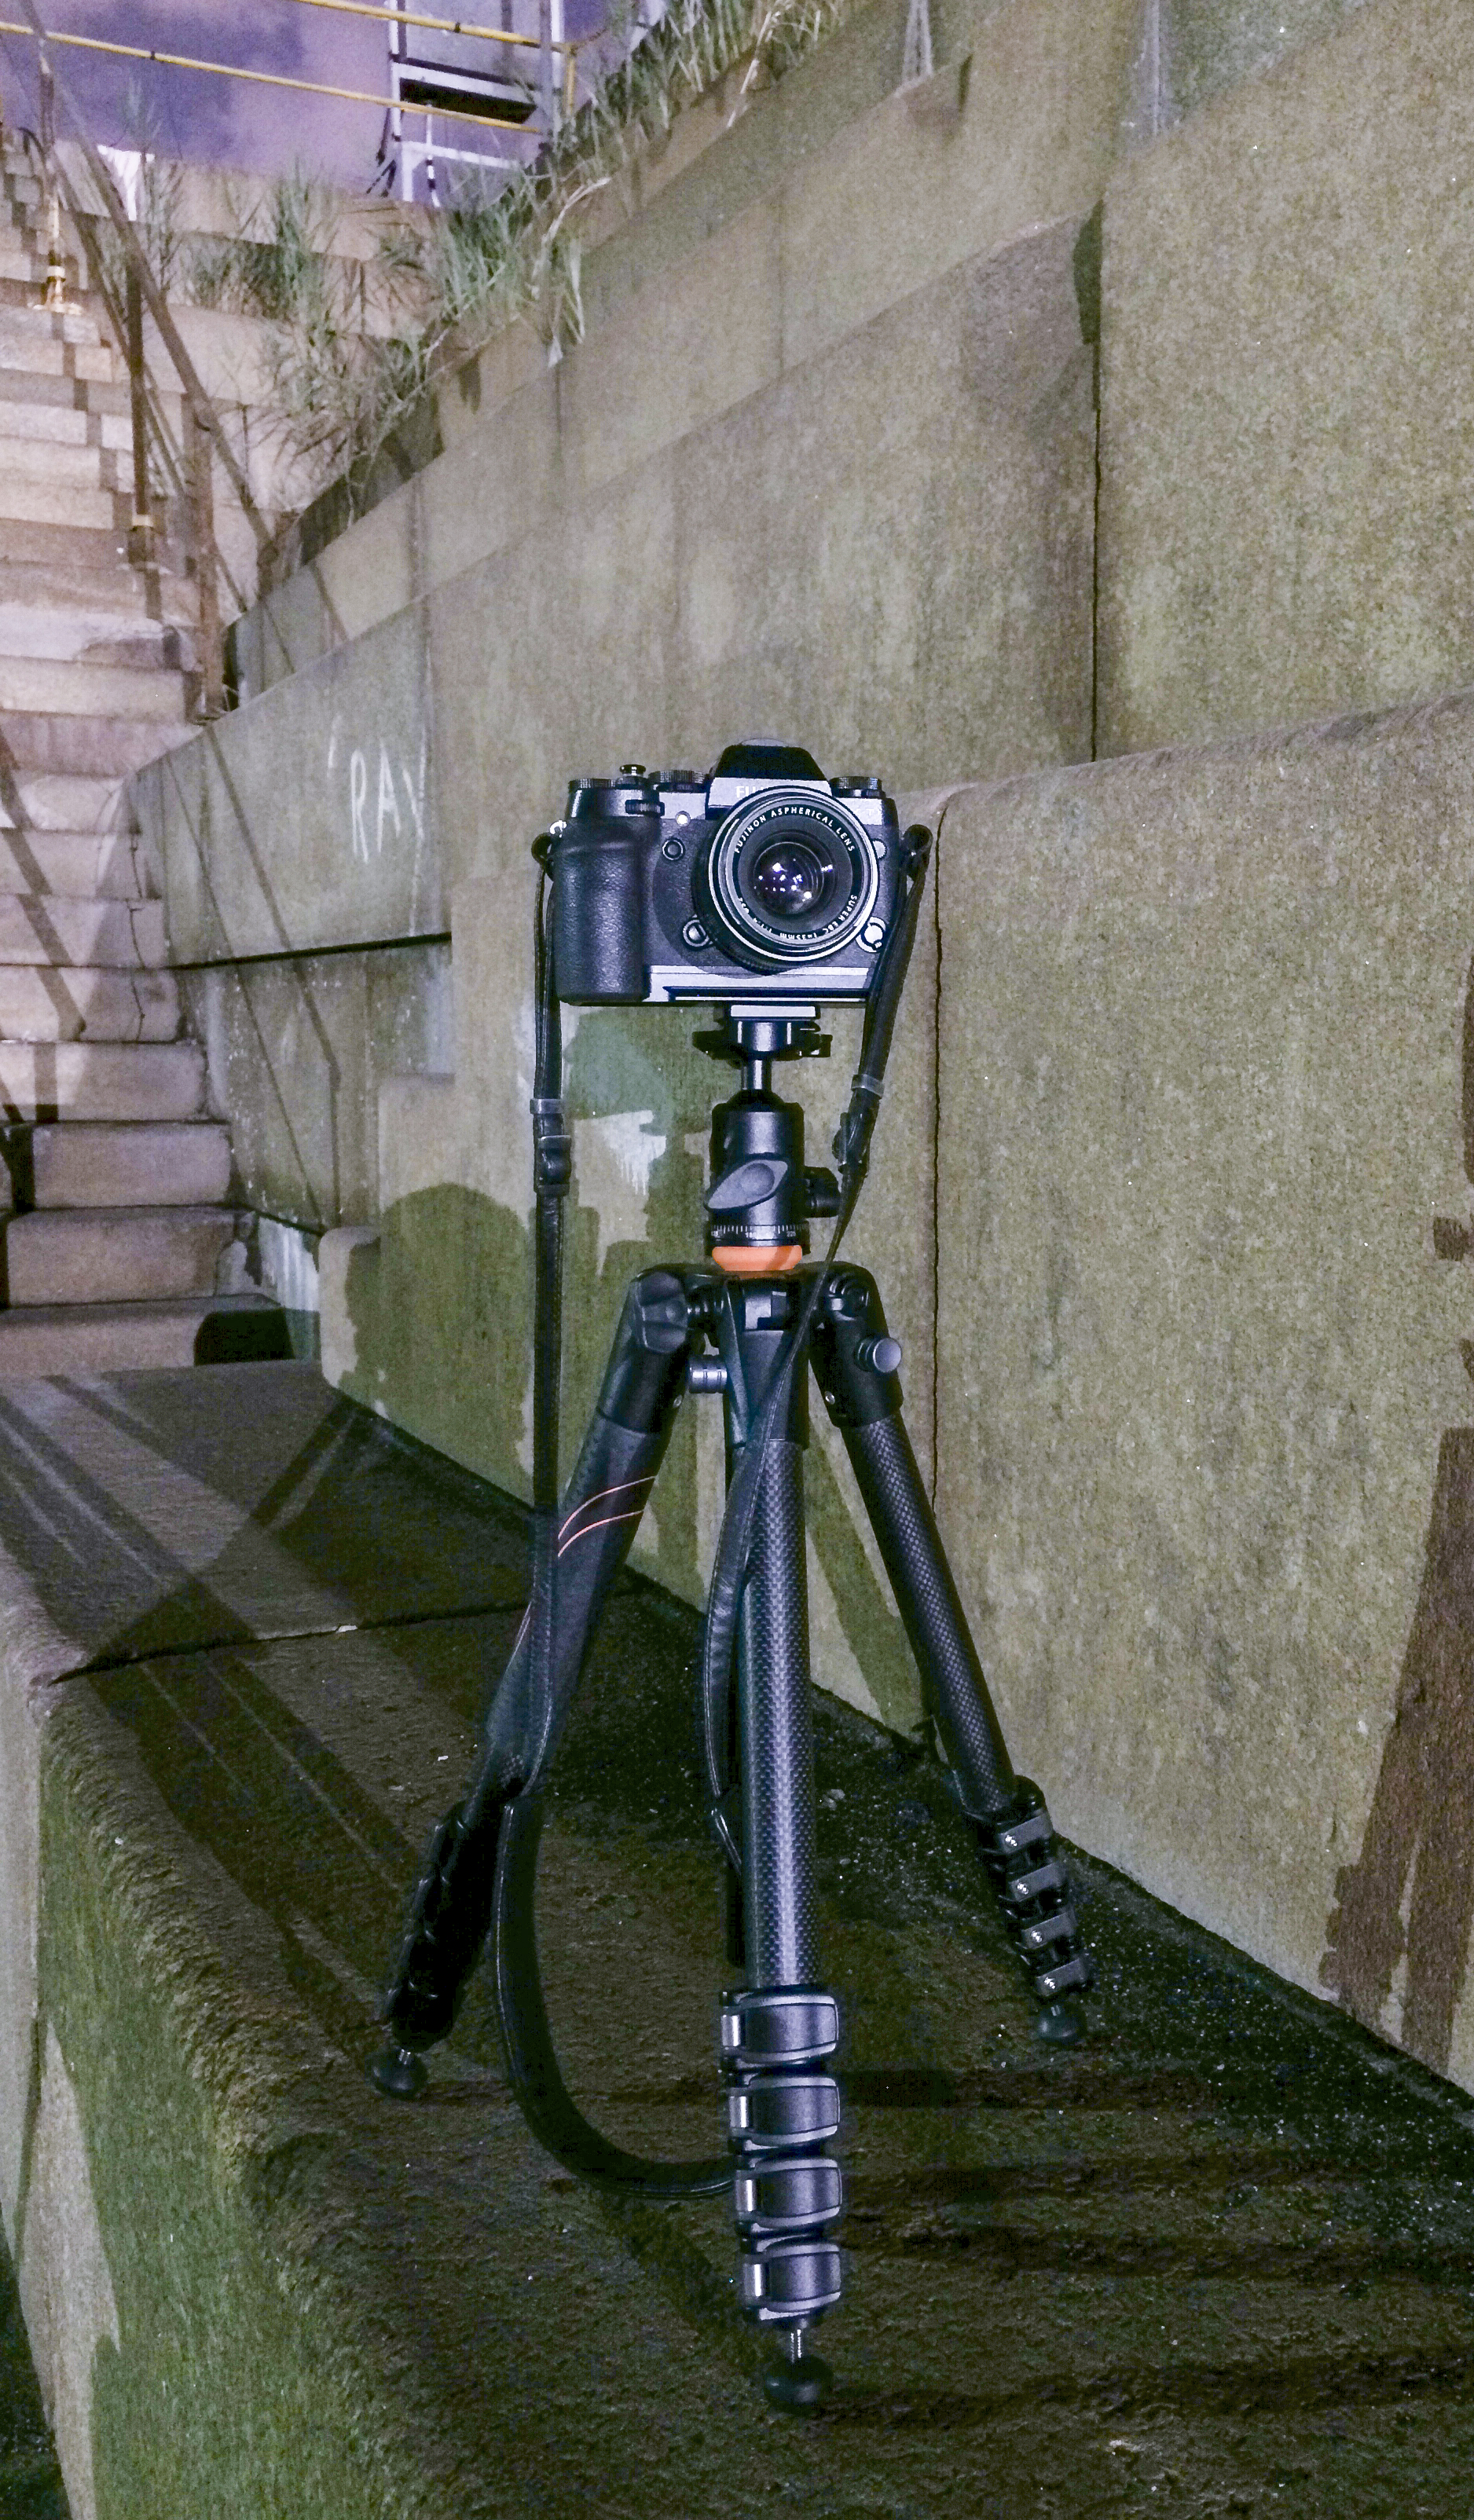 The Vanguard Veo265cb Carbon Fiber Tripod At Navy Yard Bh Explora Veo 265cb Ships Have Come And Gone Over Years Stand Very Spot Where One Of First Photographs In New York City Was Ever Taken Is A Wonderful